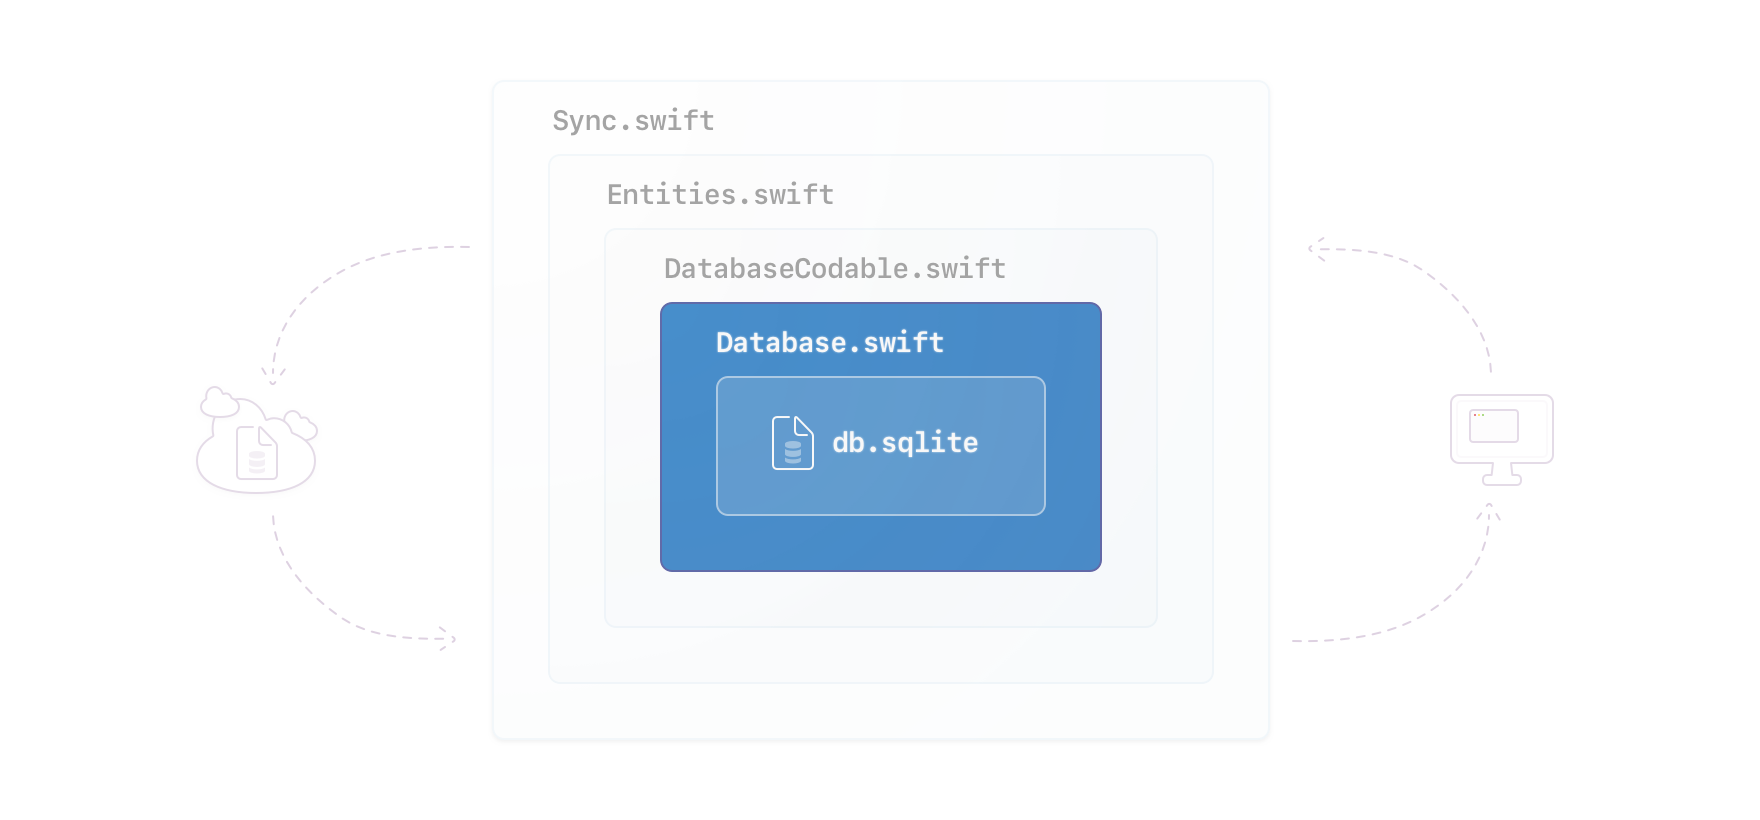 Illustration of a cloud, a computer's desktop with a window visible, and between a nested set of squares representing code concepts (from outside, in) listing Sync.swift, Entities.swift, DatabaseCodable.swift, Database.swift, and db.sqlite representing the local database file on a device with Database.swift and db.sqlite highlighted